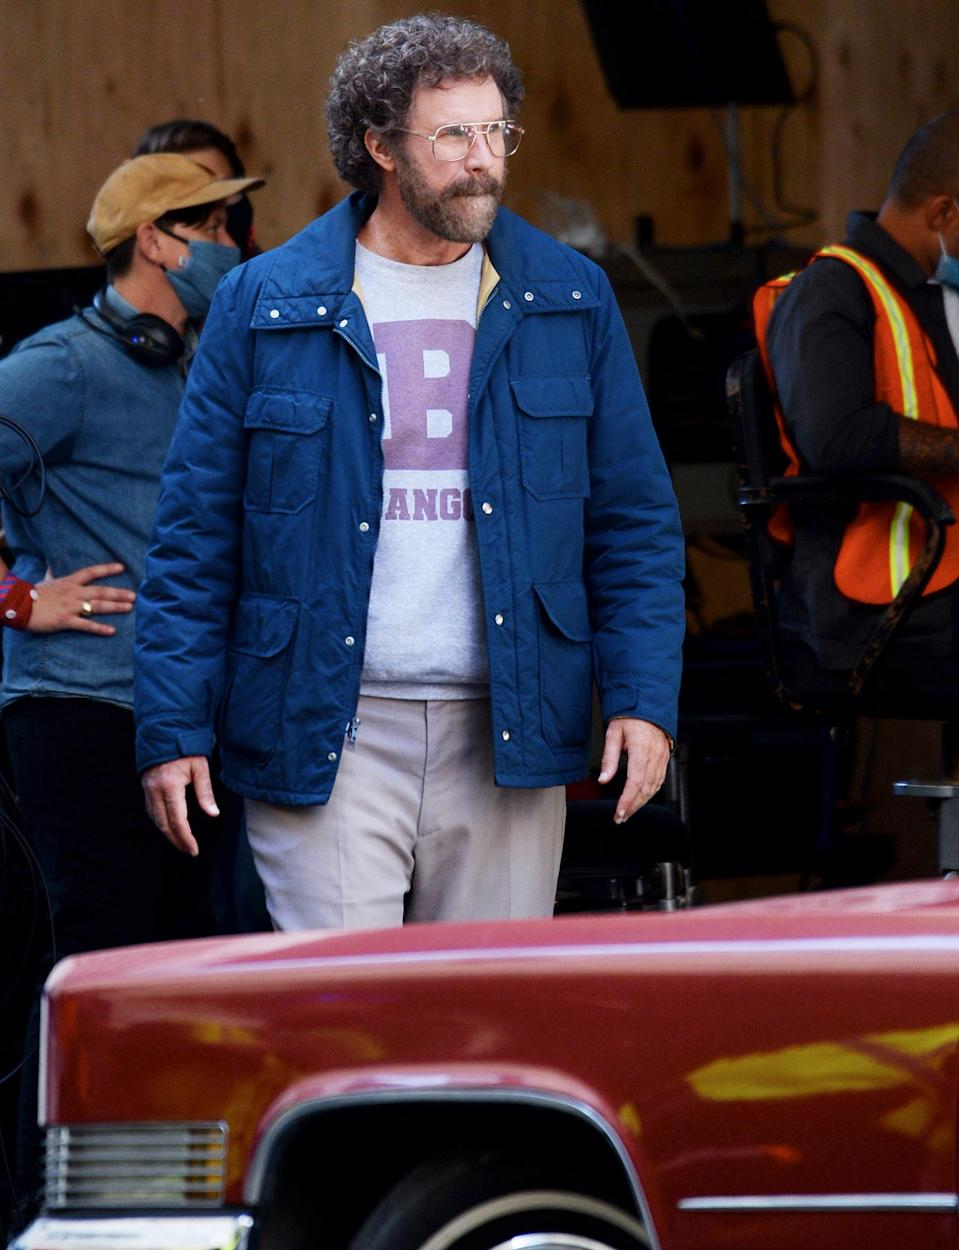 <p>Will Ferrell is seen in character filming his upcoming series <em>The Shrink Next Door</em> on Monday in L.A.</p>